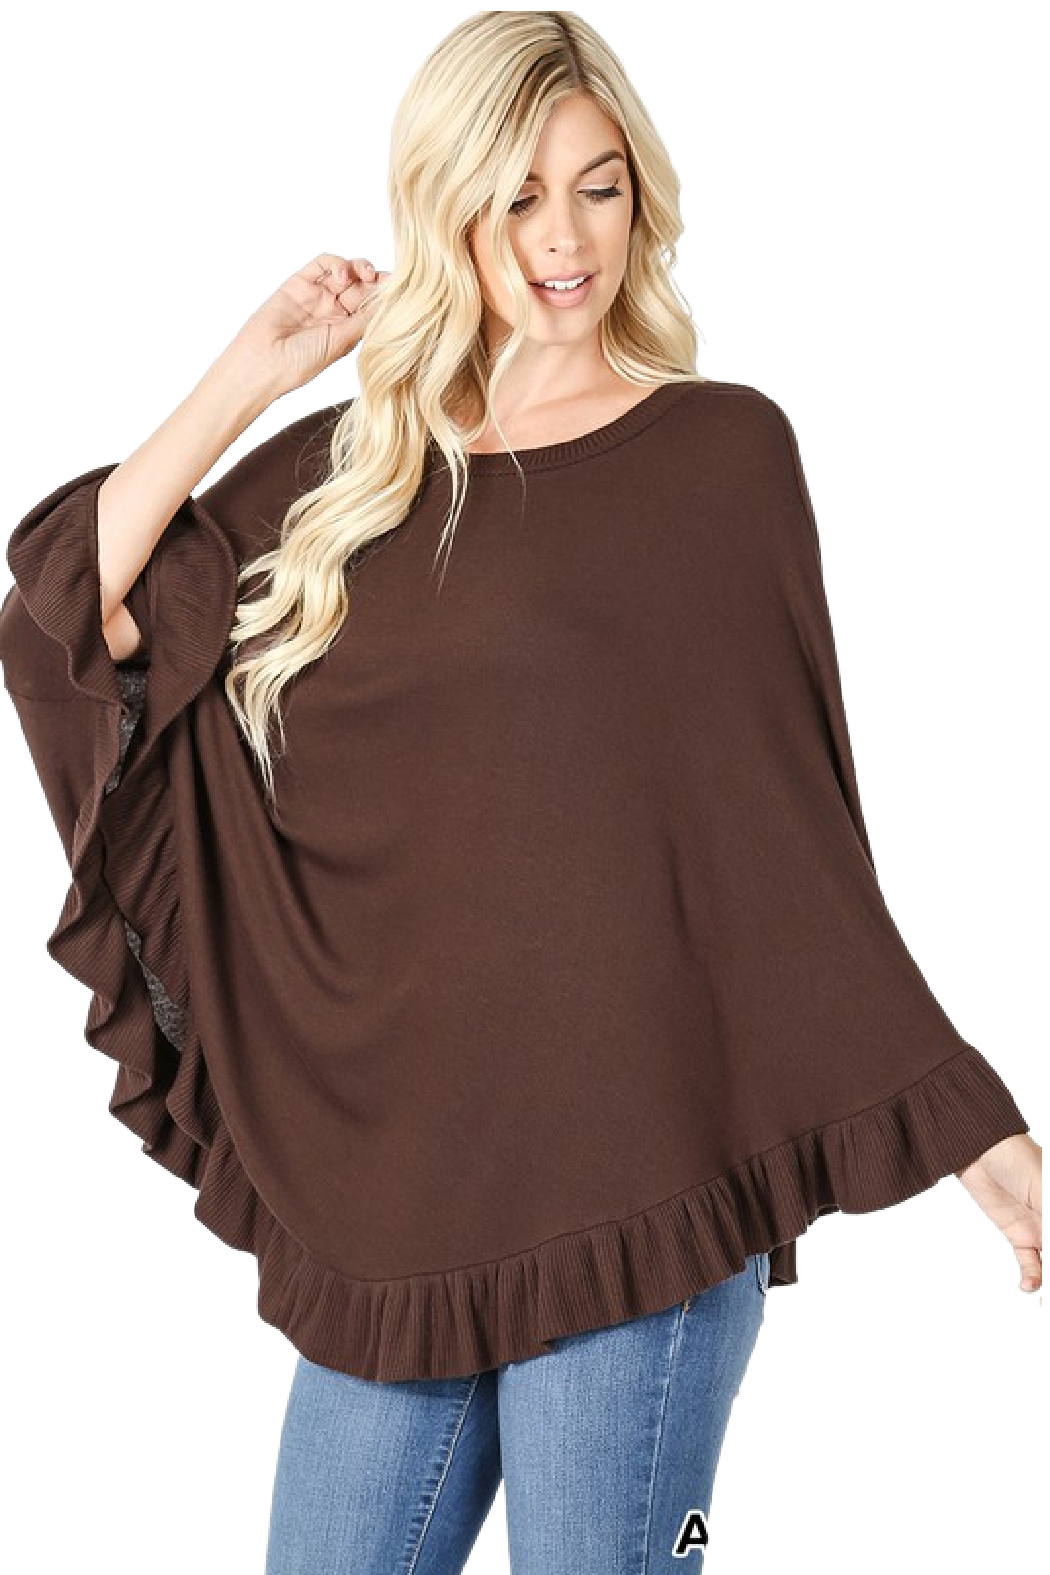 Zenana Outfitters Brown Poncho - Main Image